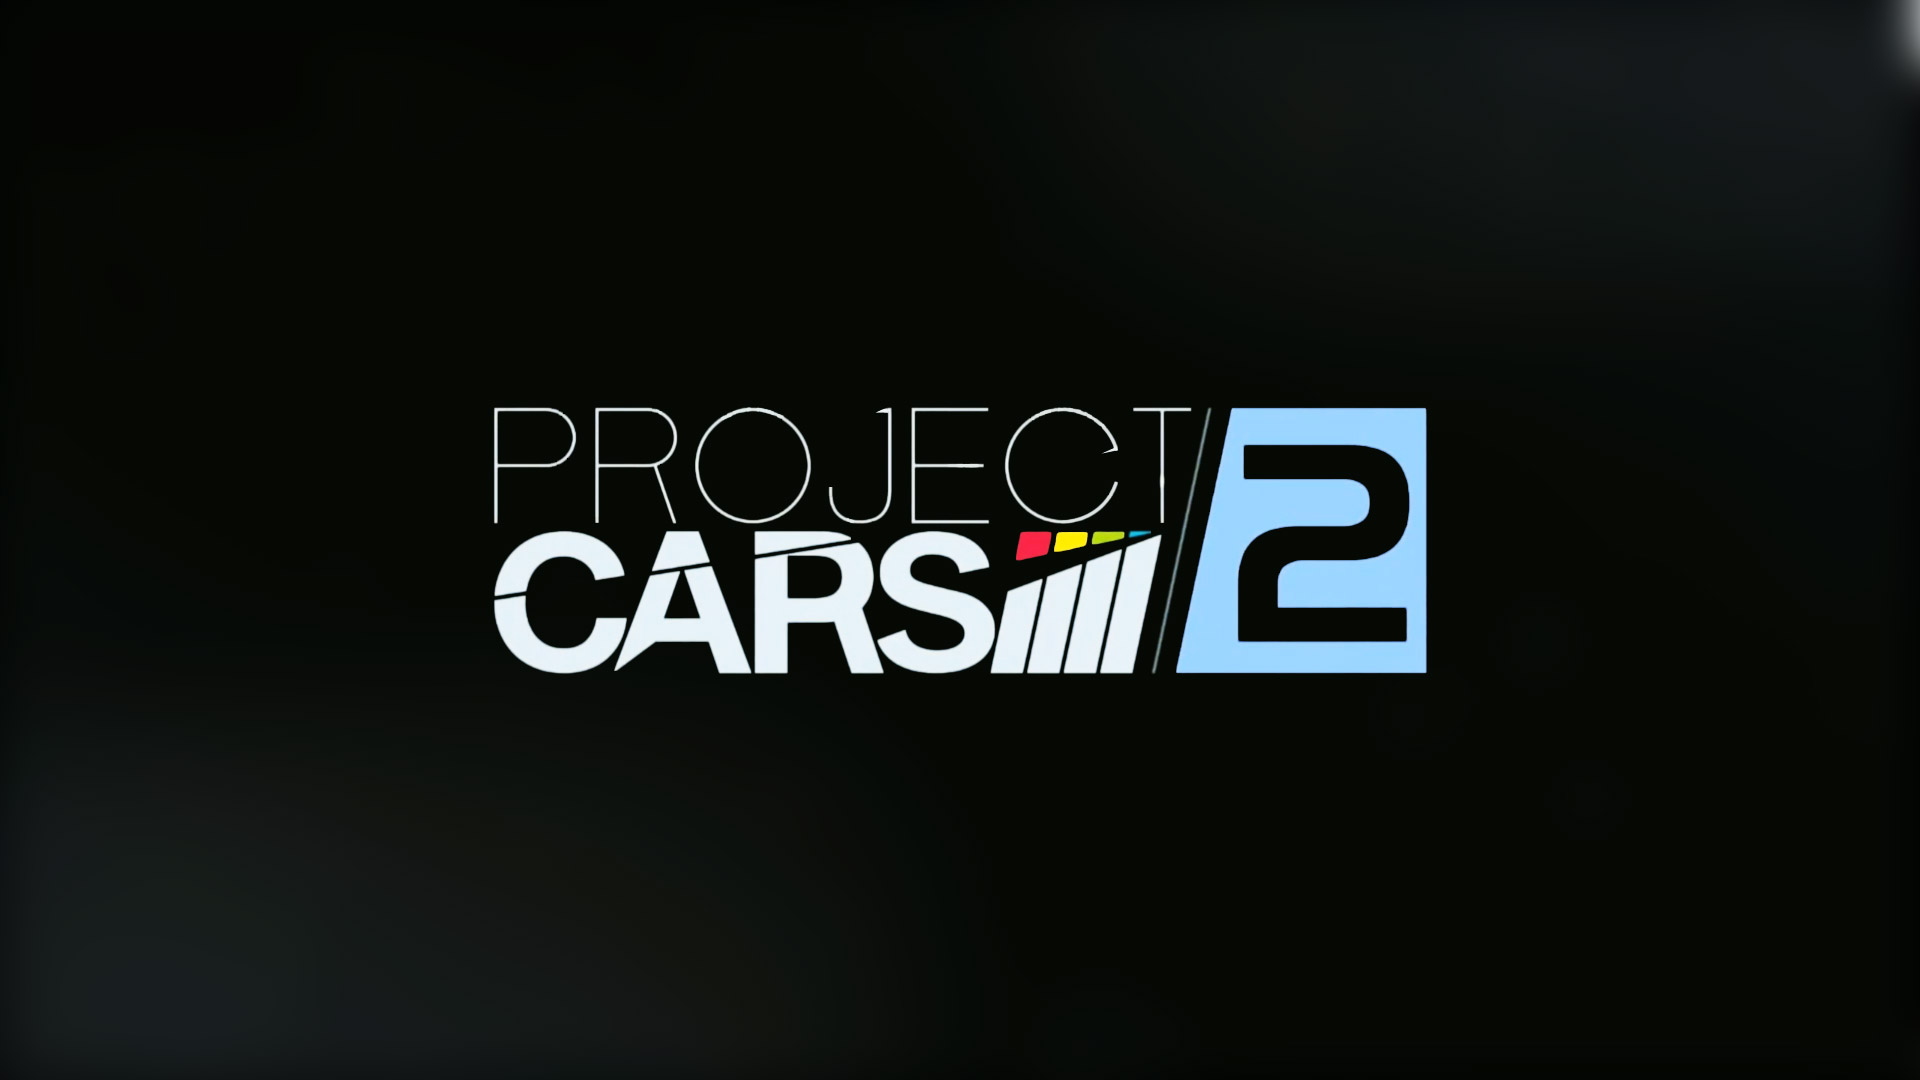 project-cars-2-vr-1.jpg